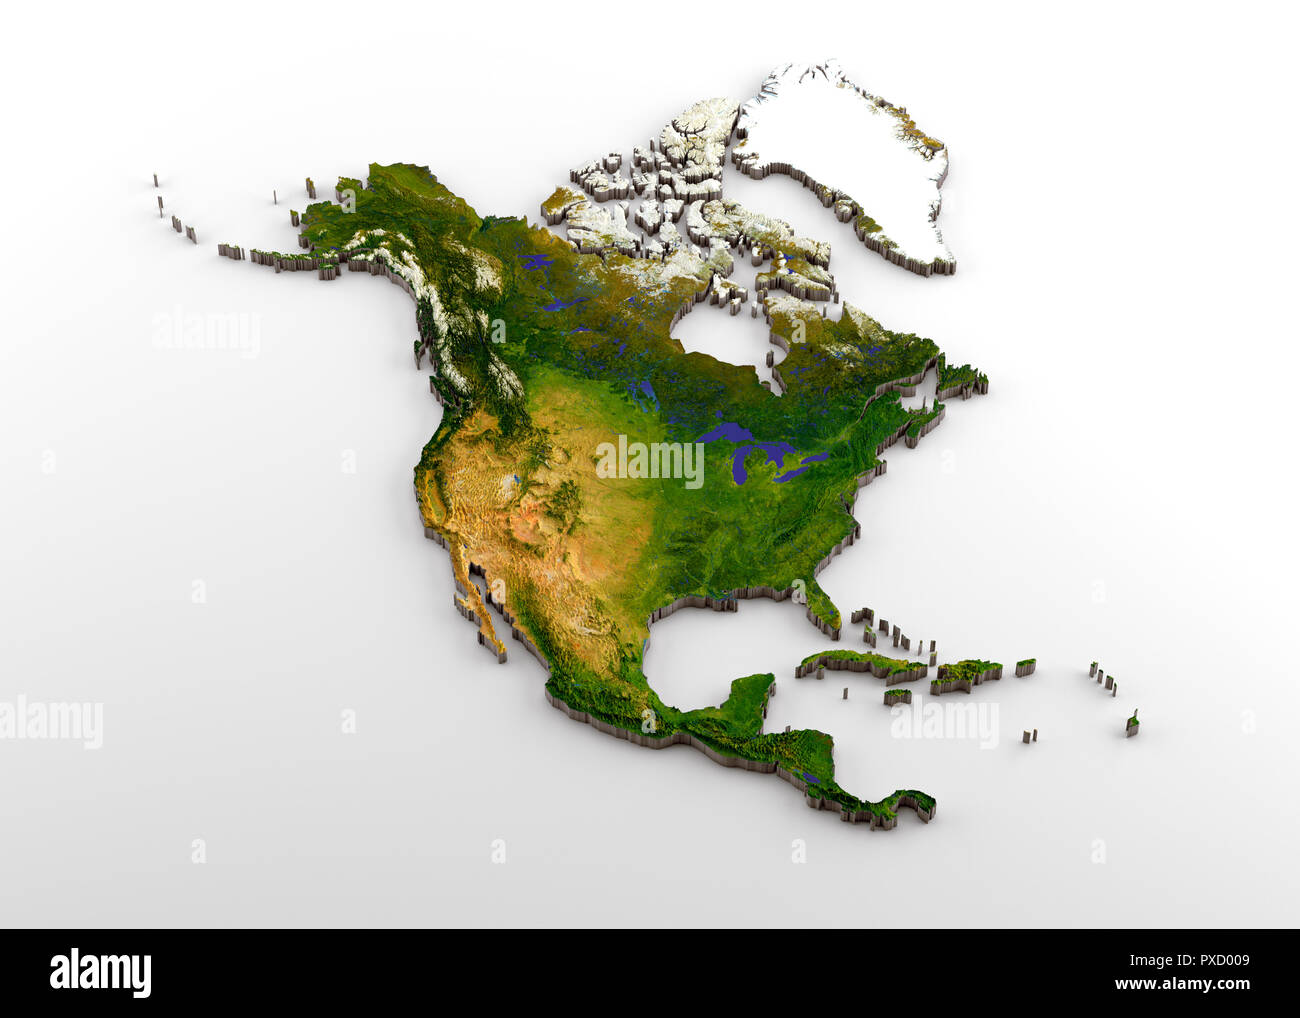 Realistic 3d Extruded Map Of North America North American Continent